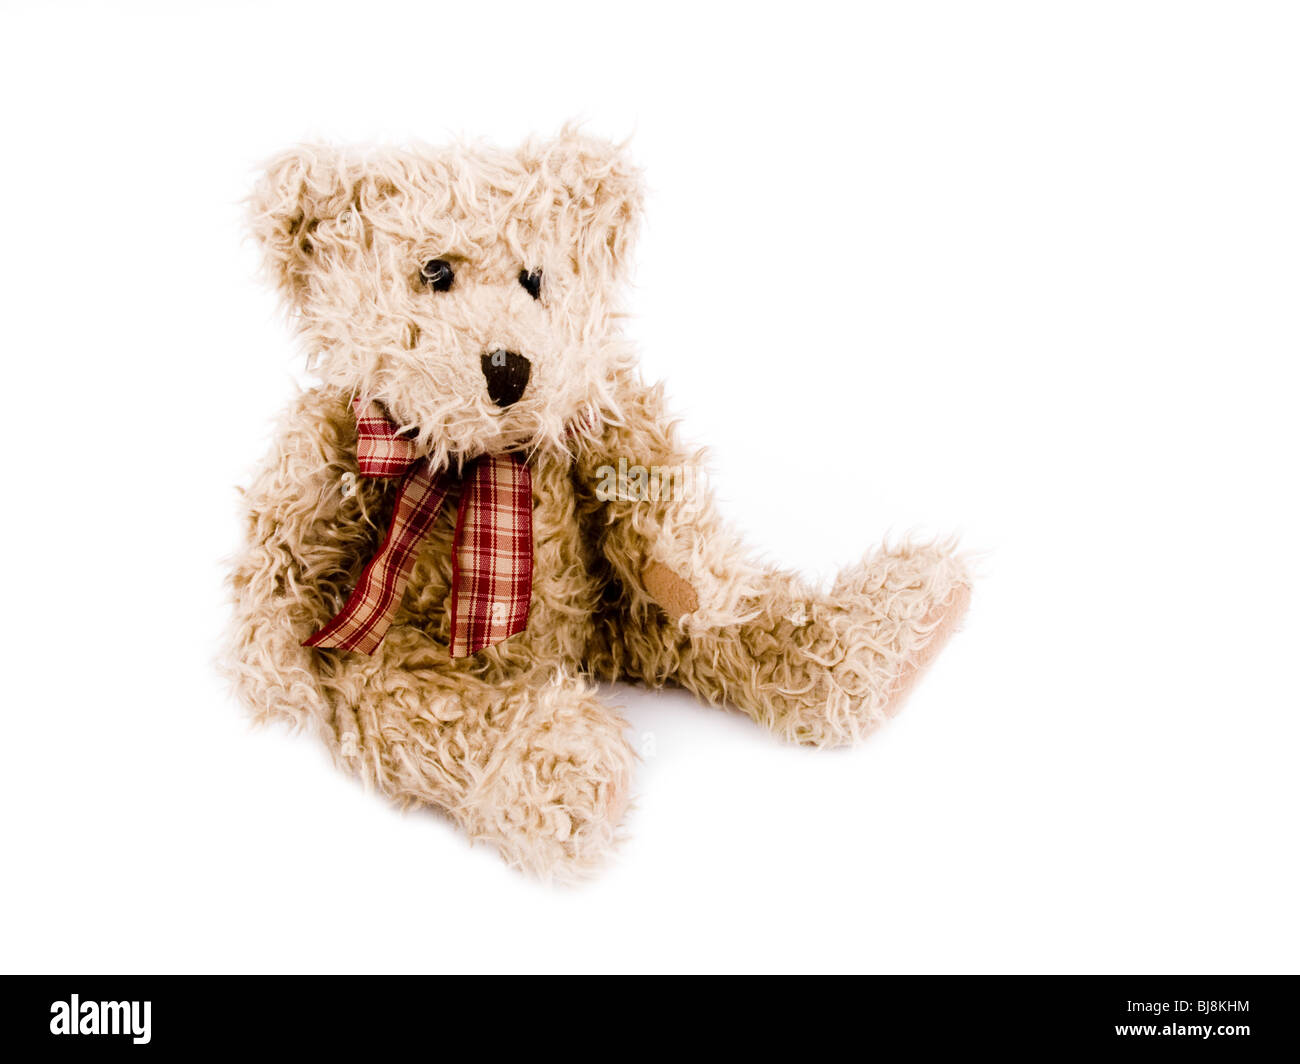 Brown teddy-bear with red bow on white background. Stock Photo